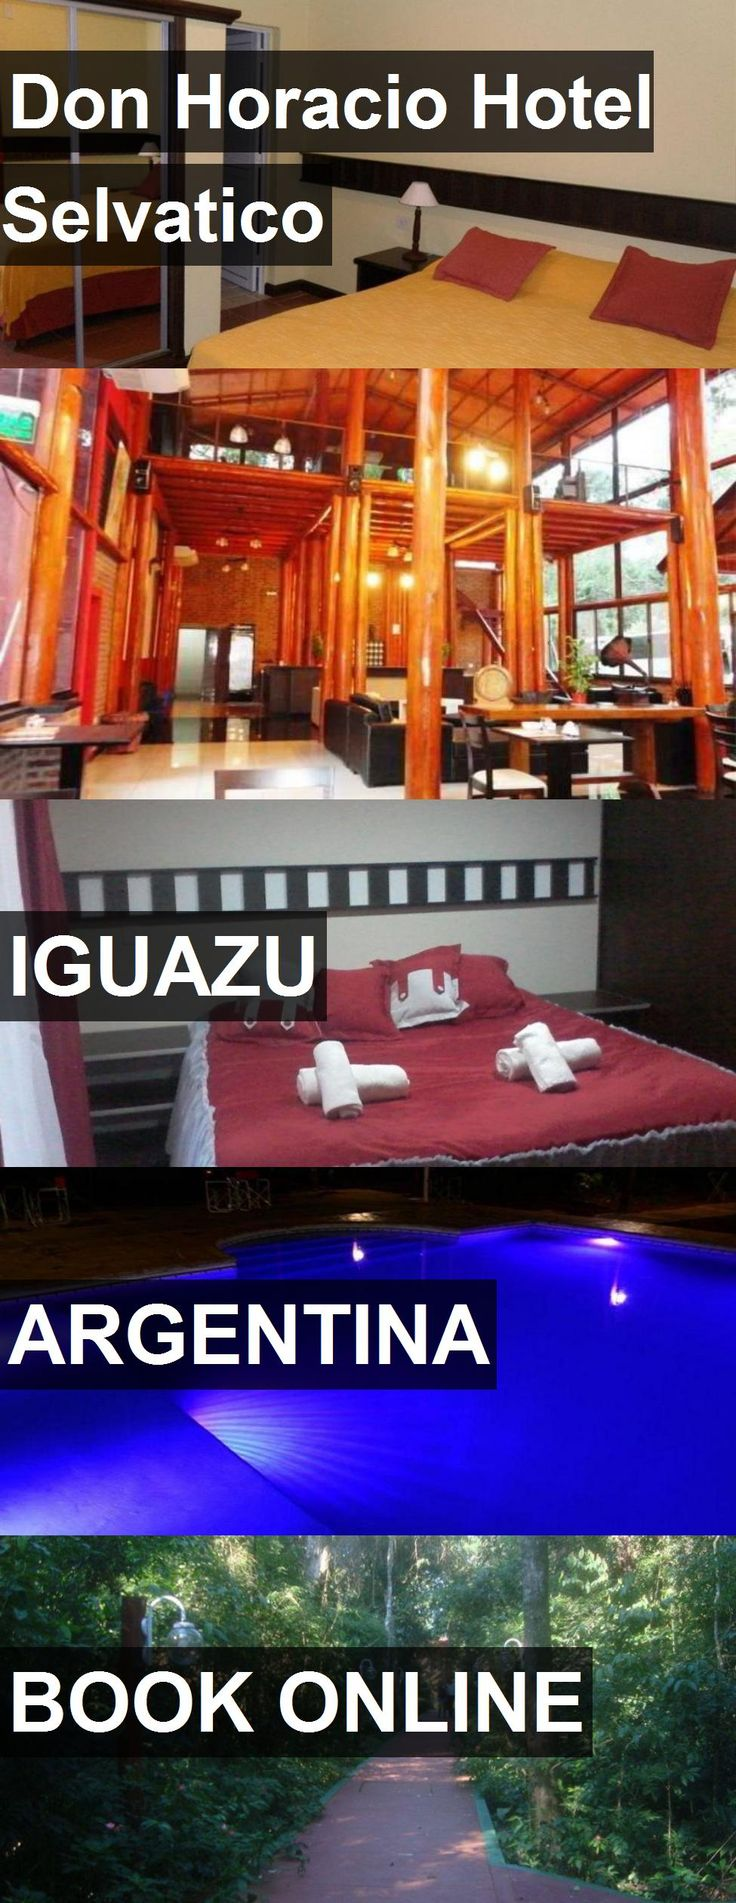 Don Horacio Hotel Selvatico in Iguazu, Argentina. For more information, photos, reviews and best prices please follow the link. #Argentina #Iguazu #travel #vacation #hotel